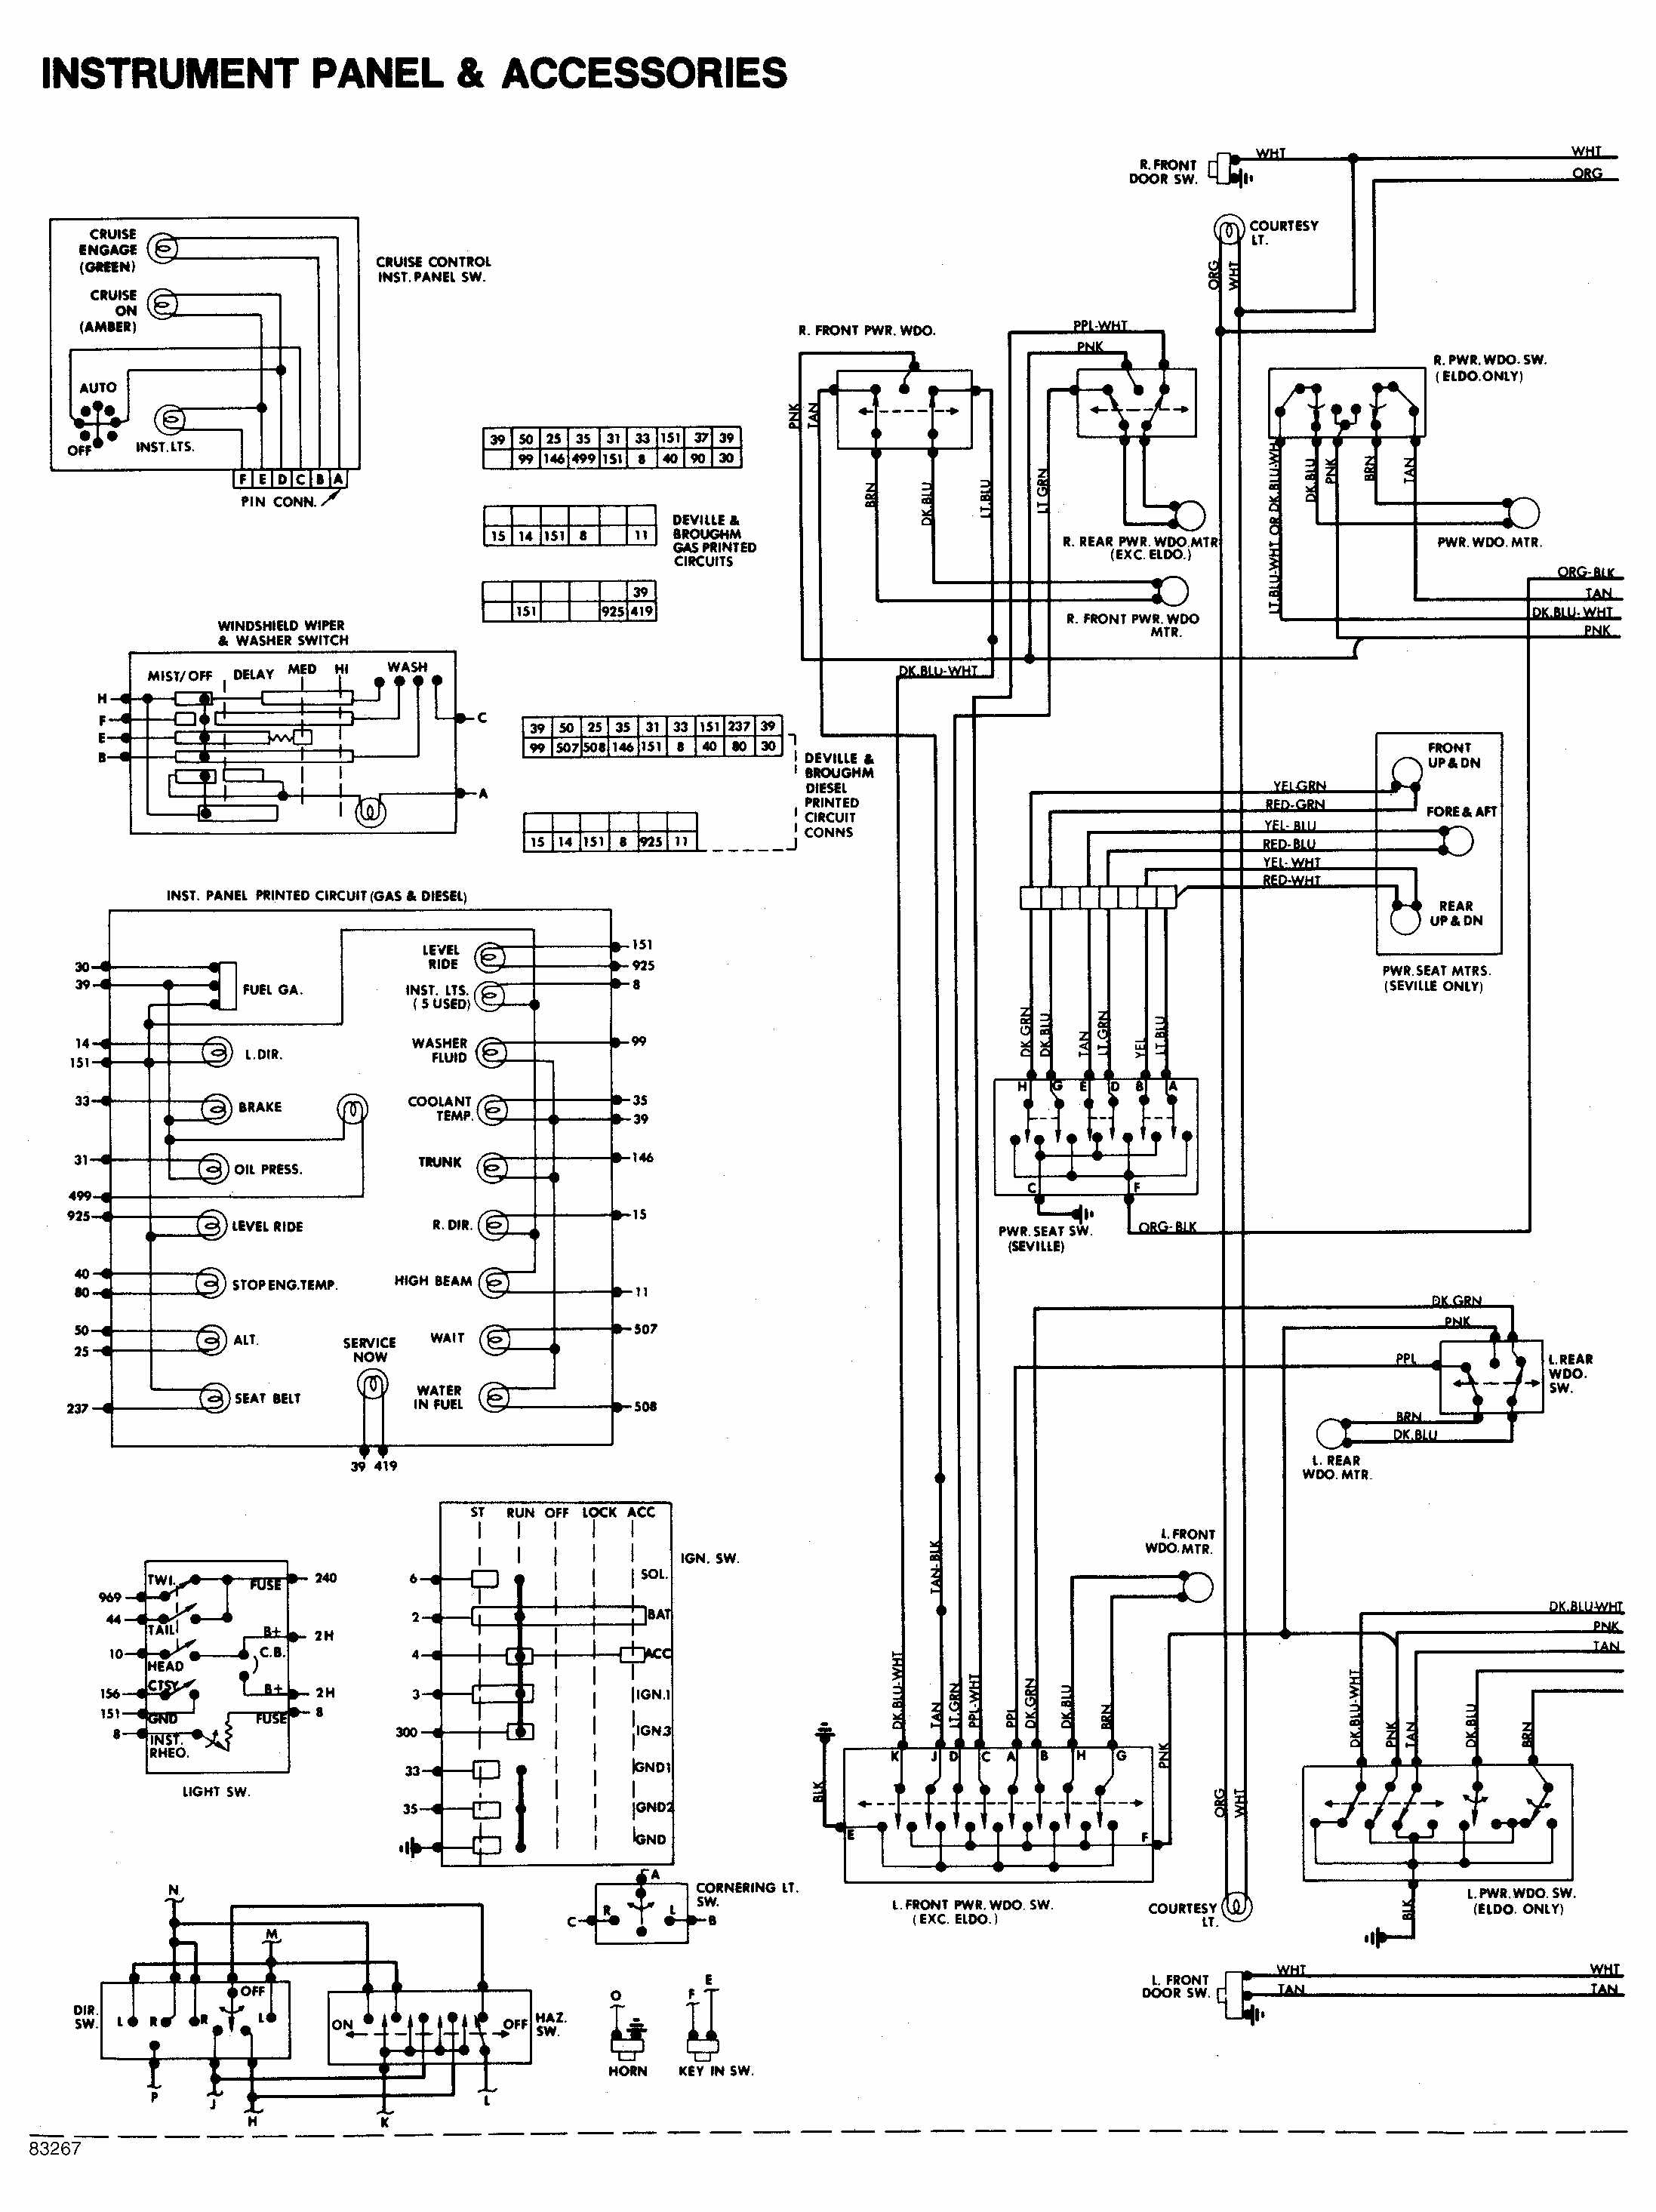 77 Dodge Ram Wiring Diagram Library 1991 W250 Chevy Diagrams Trailer 2014